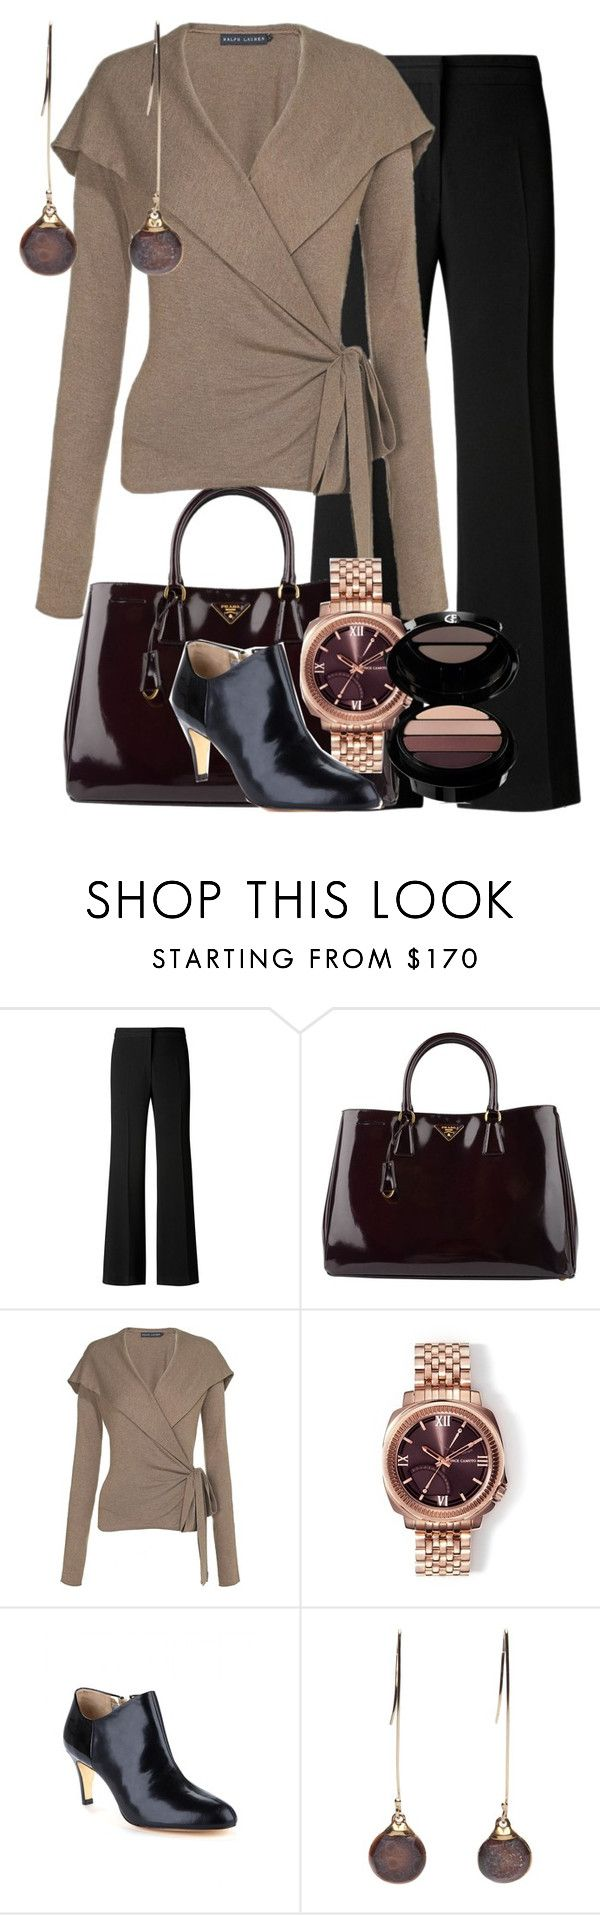 """""""Couture Chic Designs-Outfit"""" by jgalonso ❤ liked on Polyvore featuring Gérard Darel, Prada, Ralph Lauren Blue Label, Vince Camuto, Ted Baker, Gems by Emily Howell, Giorgio Armani, couture chic designs and jgalonso"""